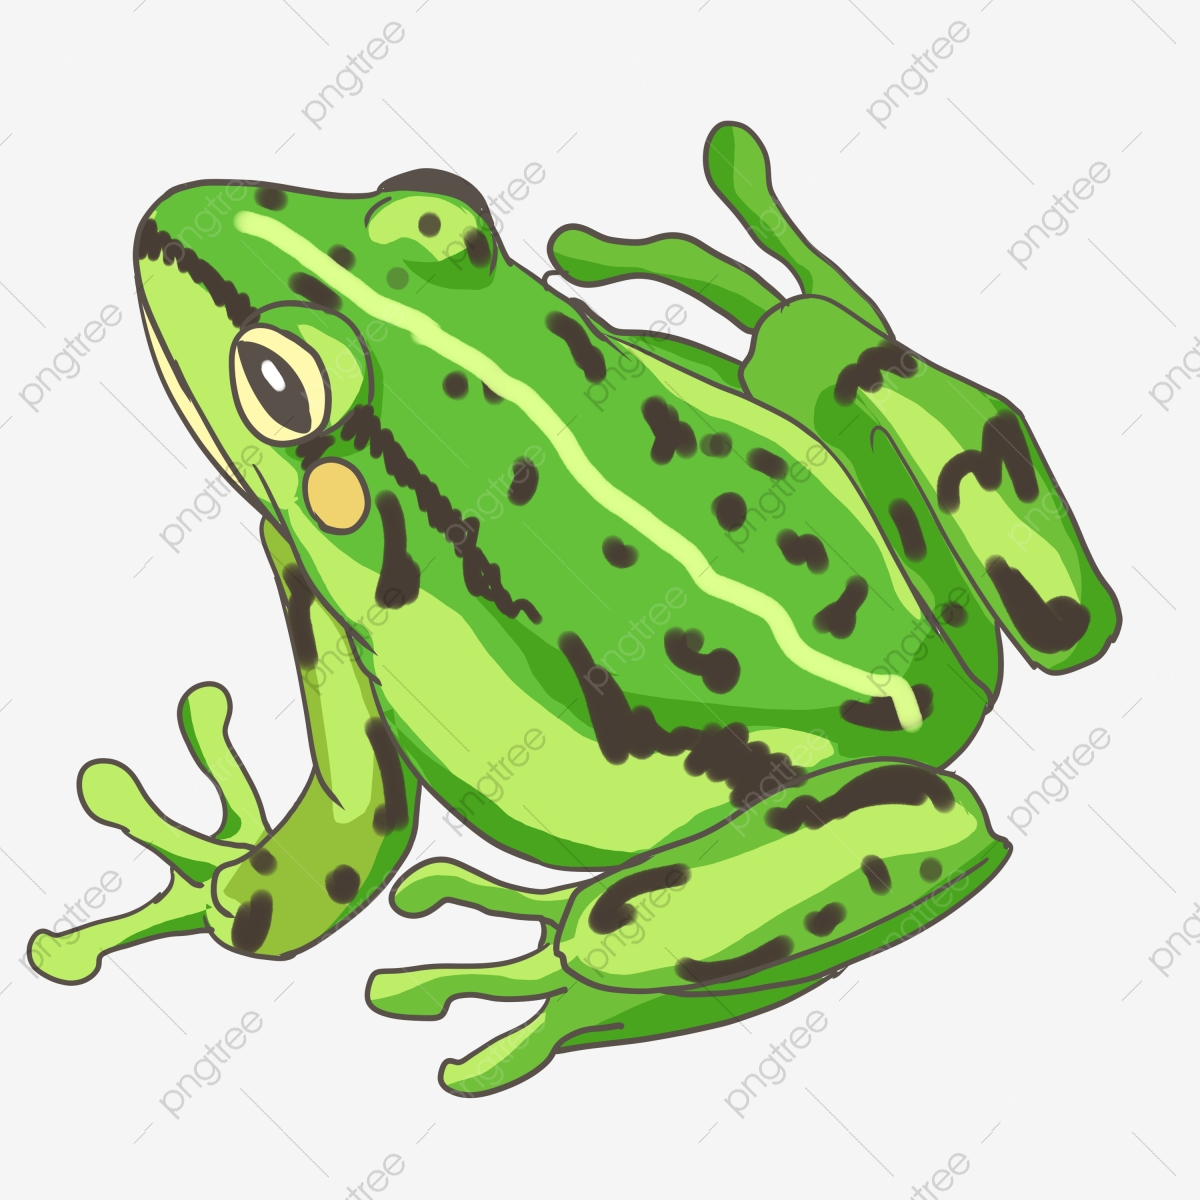 Amphibian Katak Hijau Katak Katak Katak Hijau Fail Png